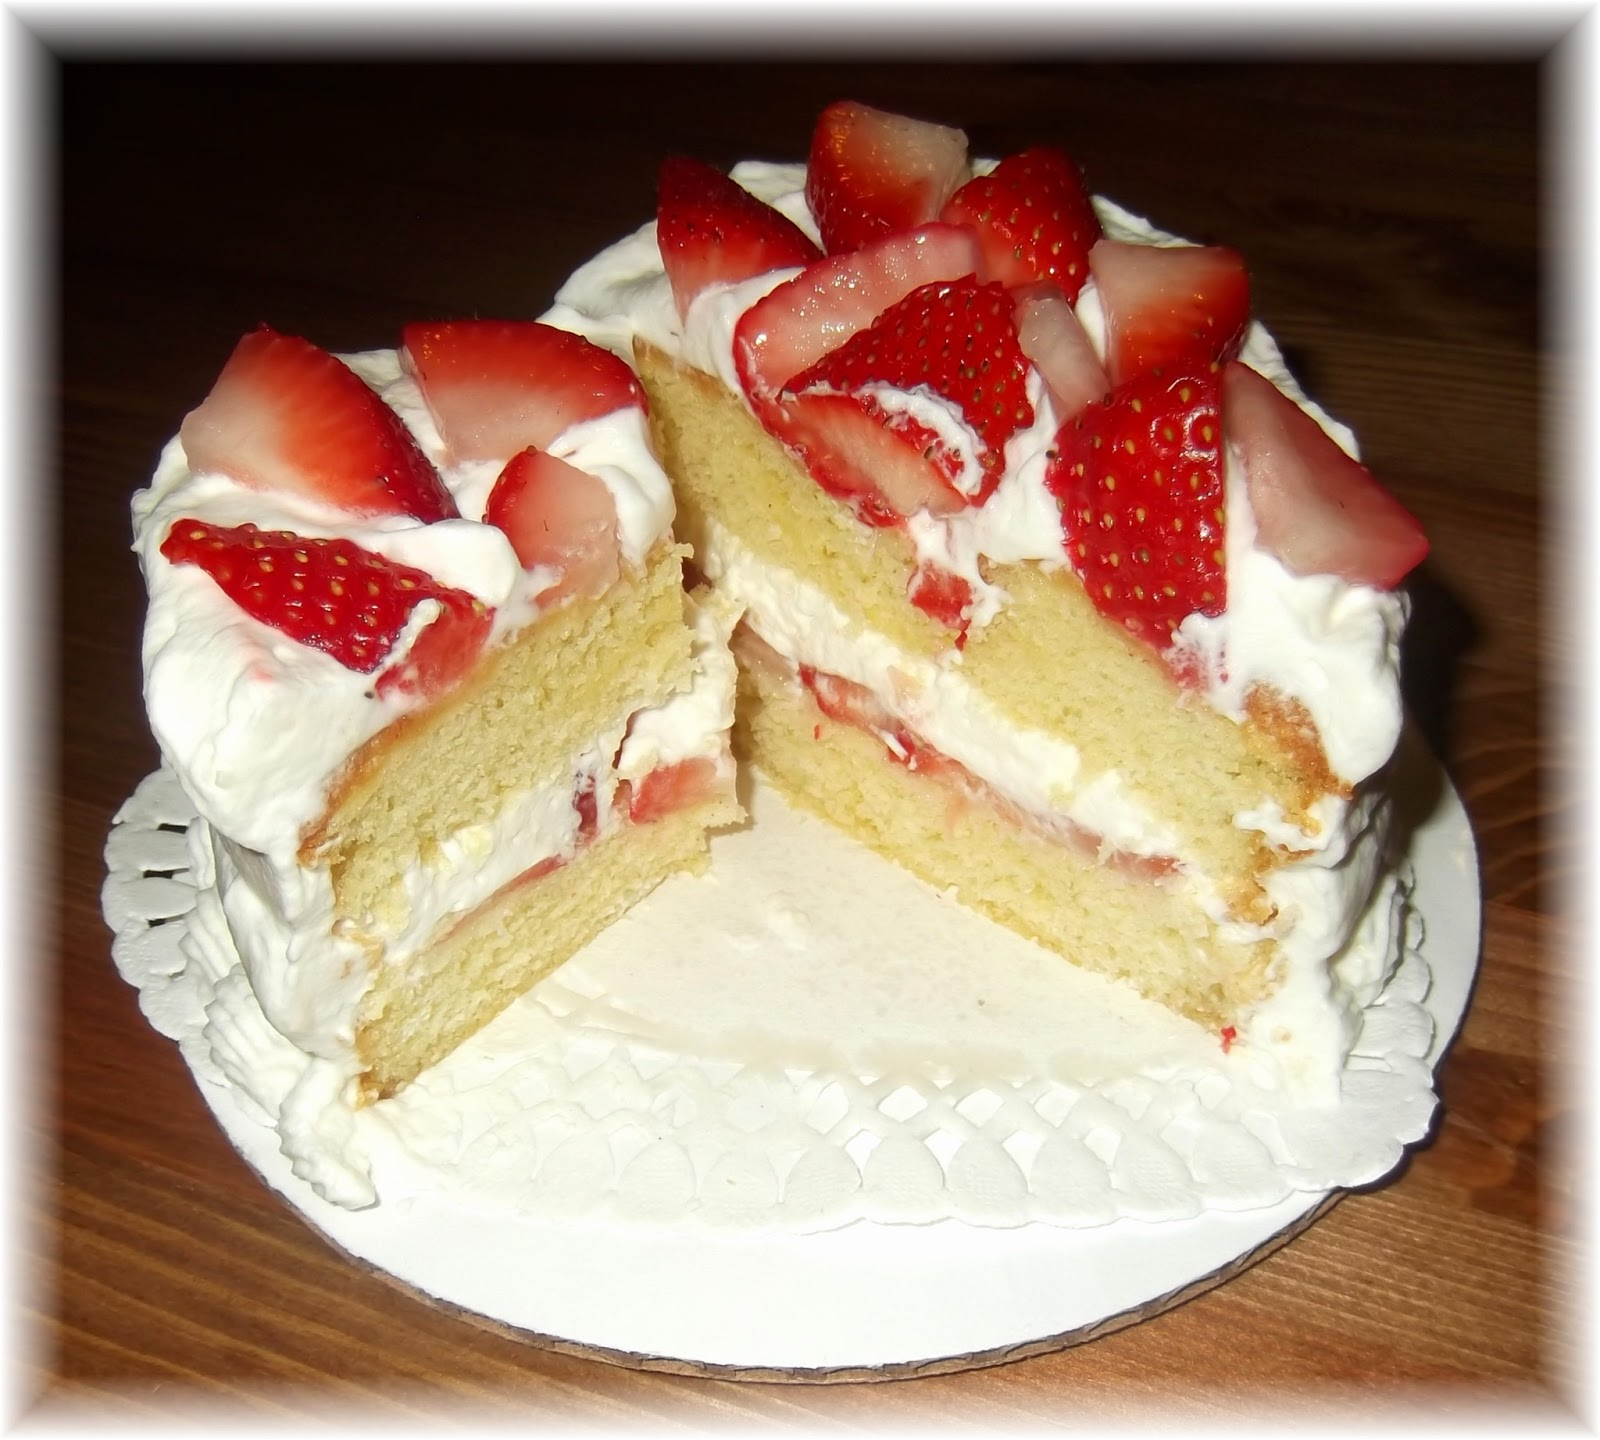 Ina Garten Country Cake With Strawberries And Whipped Cream